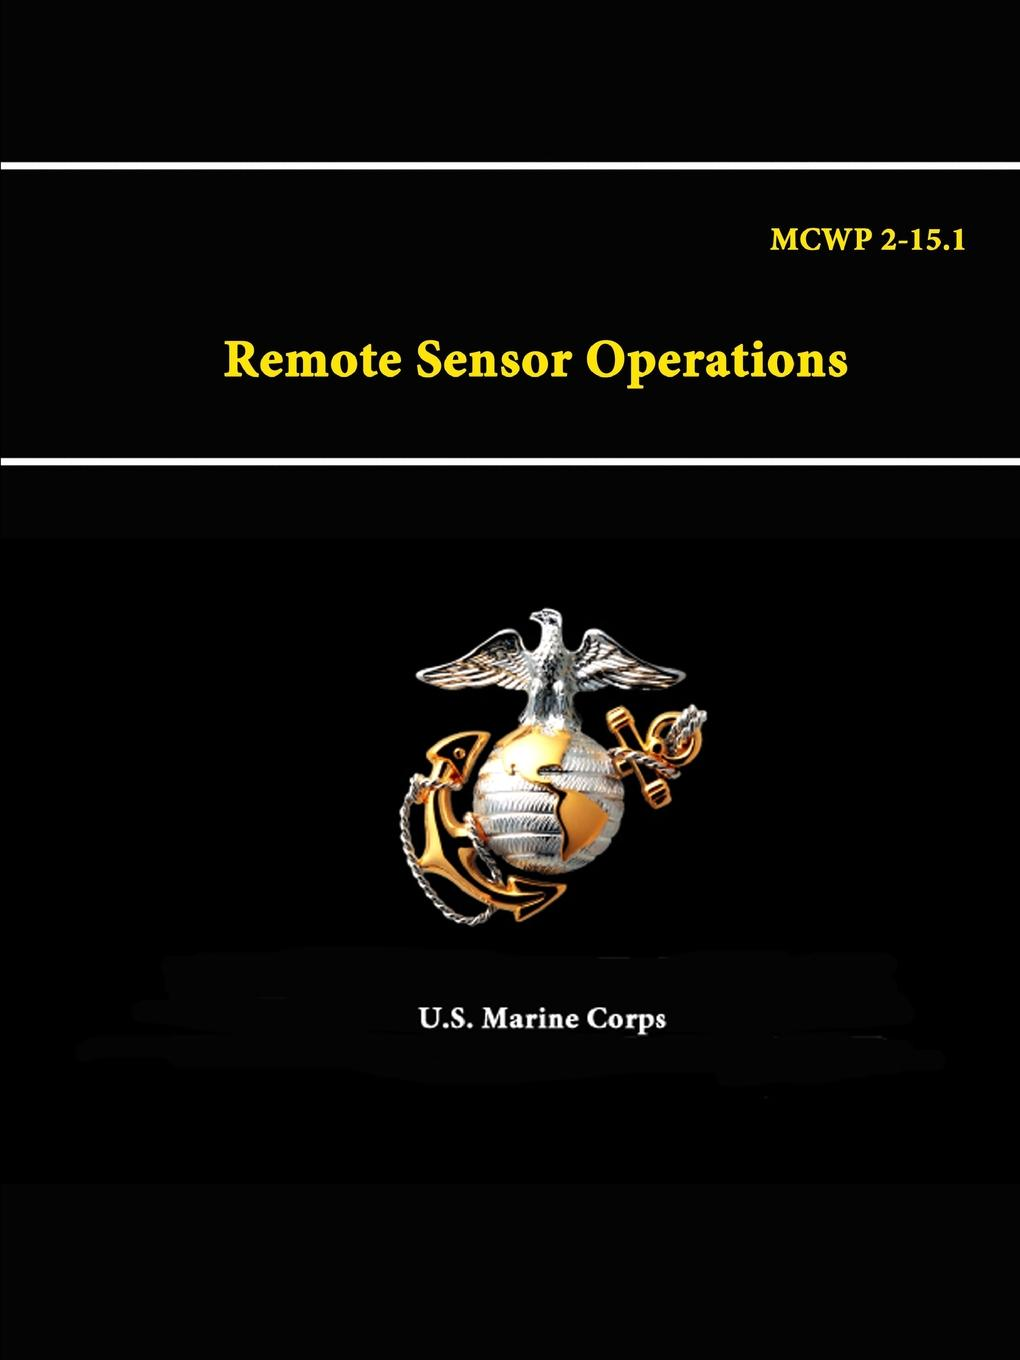 U.S. Marine Corps Remote Sensor Operations - MCWP 2-15.1 effectiveness of information technology on the operations of saccos